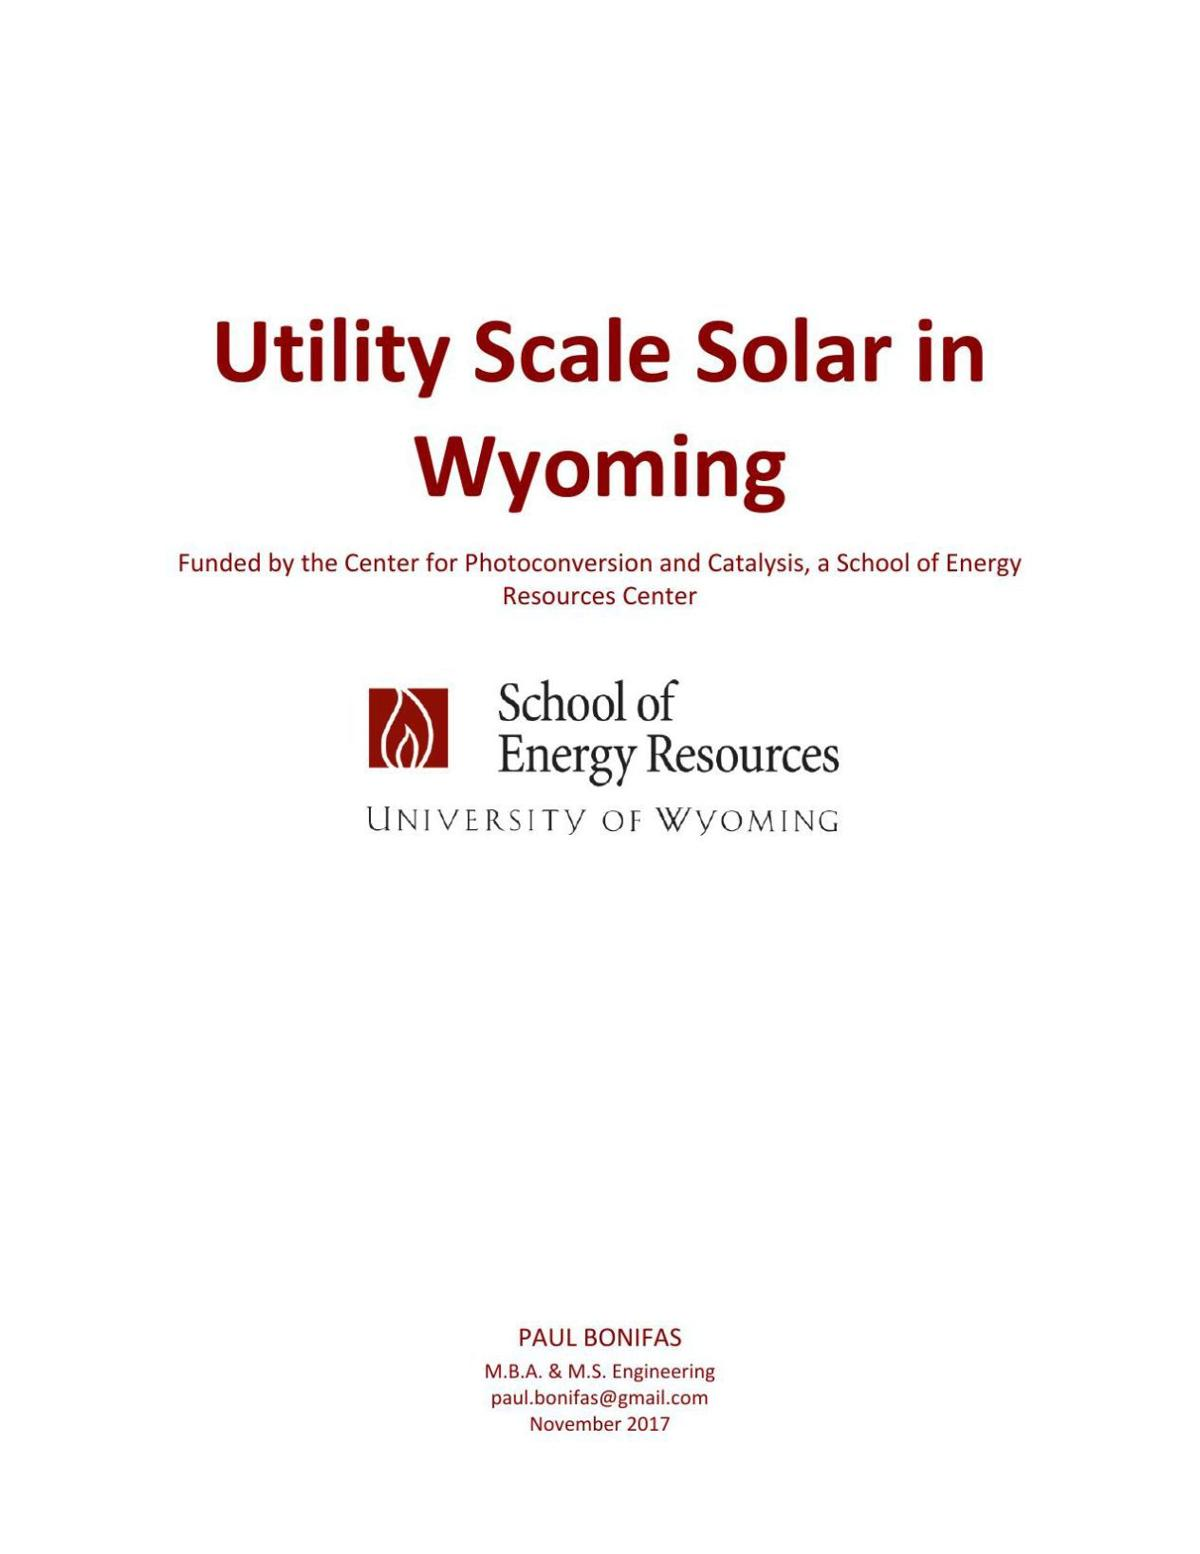 Utility Scale Solar in Wyoming